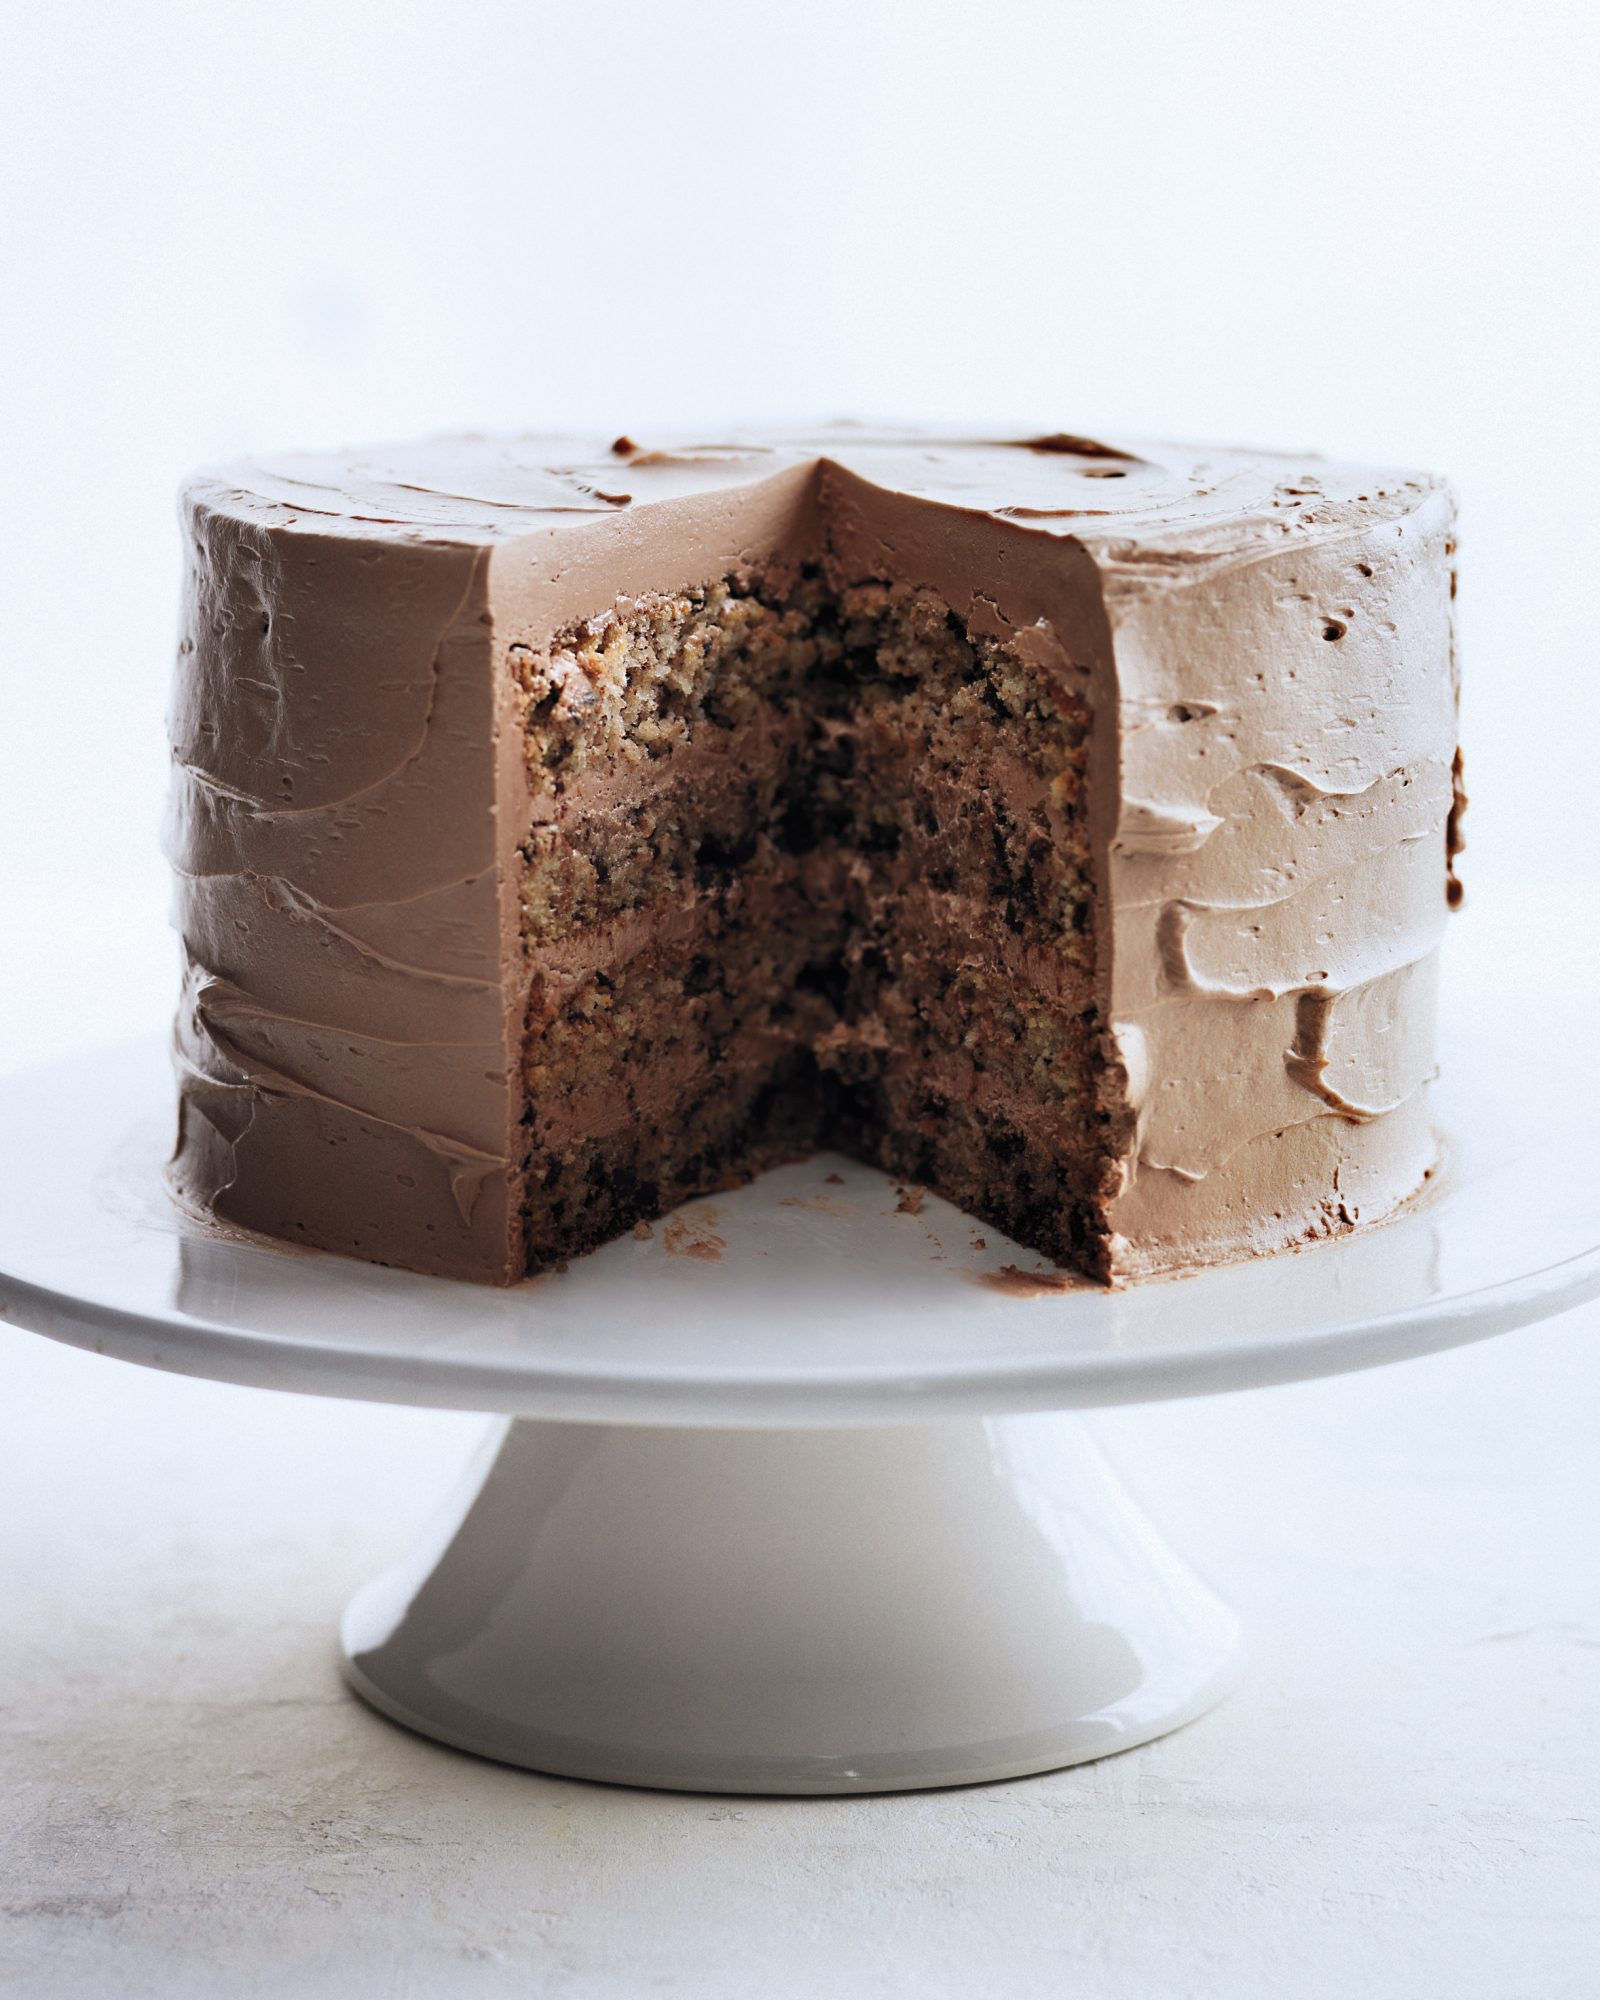 chocolate-flecked-layer-cake-md109612.jpg